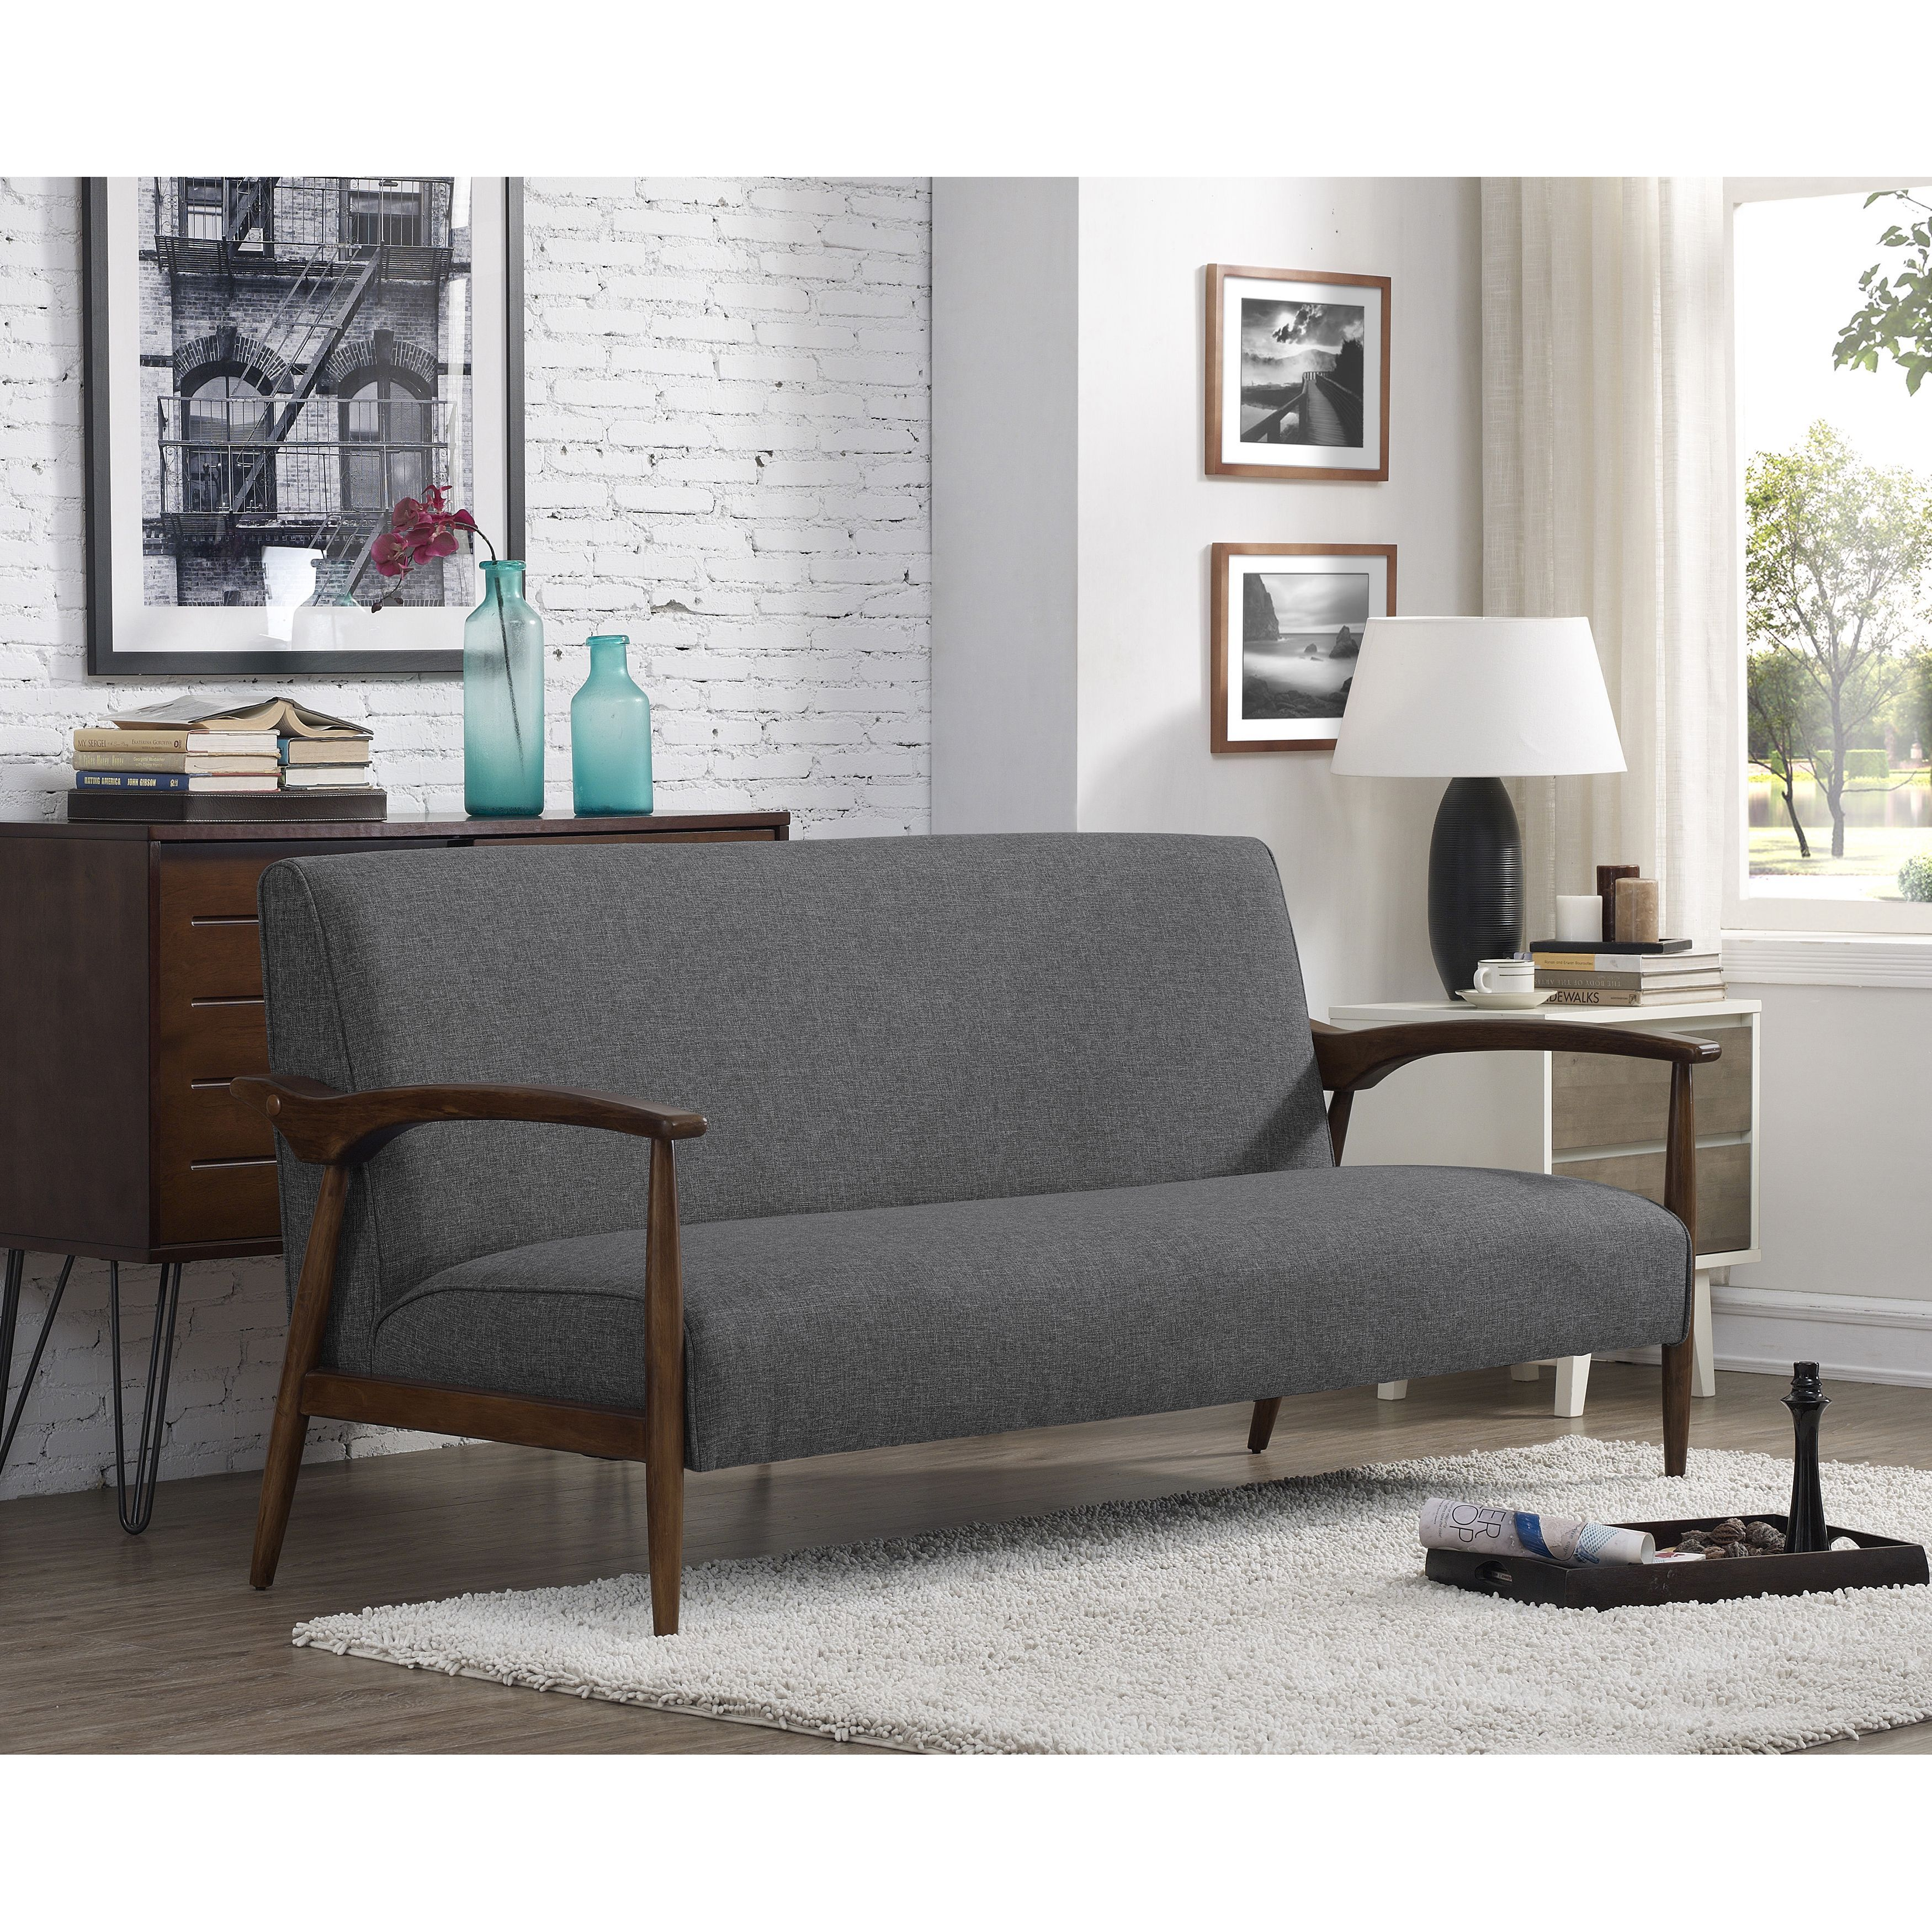 Buy Braxton Studio From Overstock.com For Everyday Discount Prices! Get  Everydayu2026